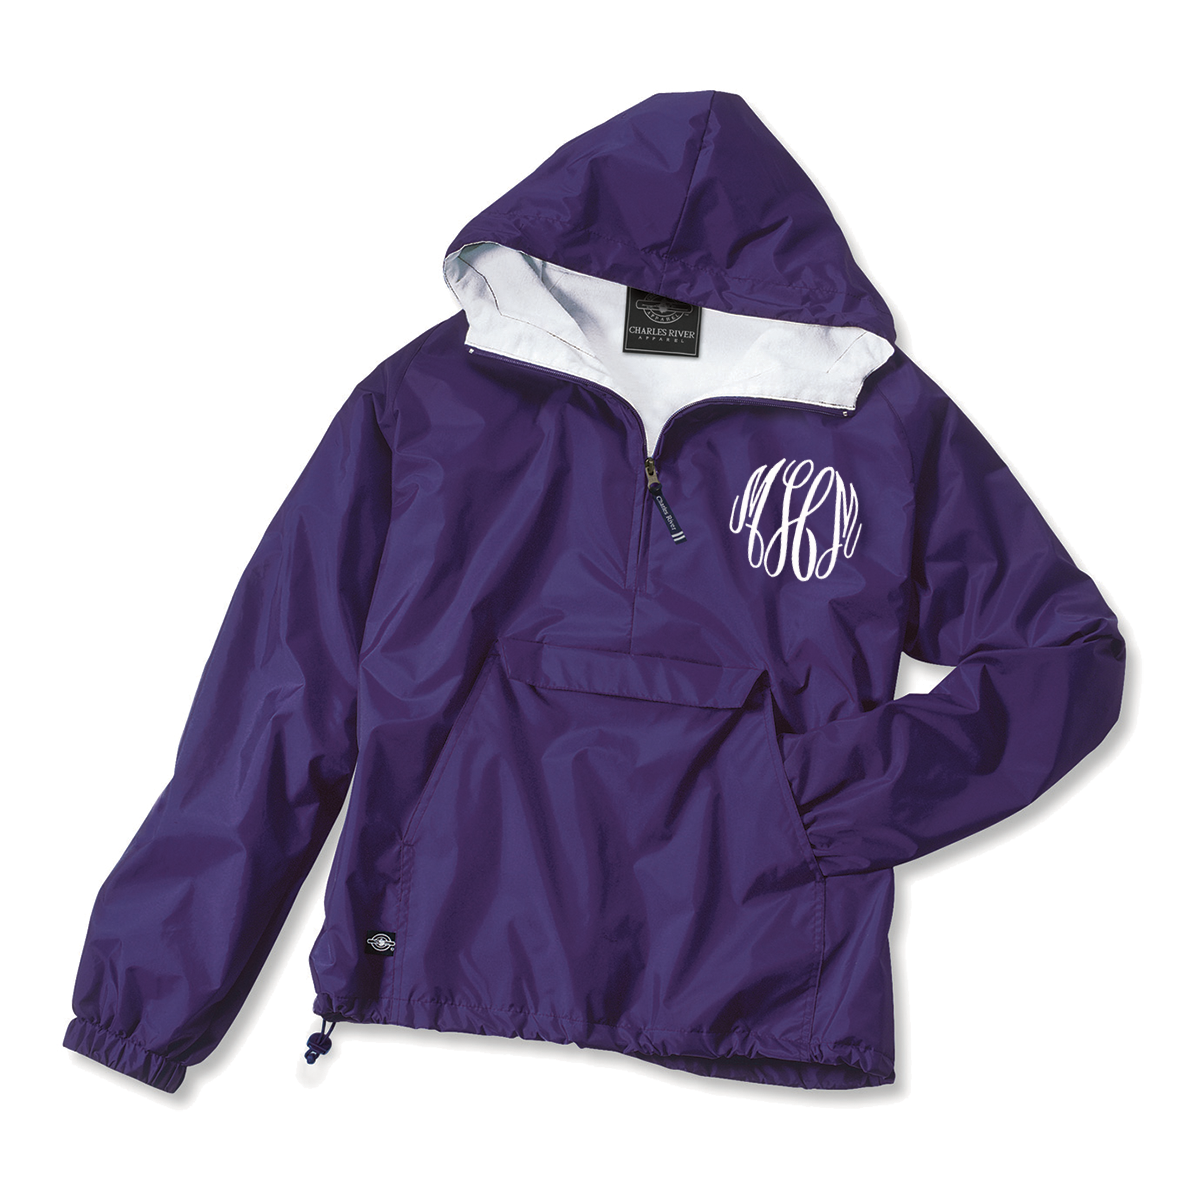 $39.99 ($8 monogram)  Stay warm on cold days and dry on rainy days!  This Classic Solid Pullover is wind and water resistant with a cotton flannel lining throughout the inside for warmth during the colder months.  This functional jacket packs into a pocket for easy storage when the skies clear.  Perfect to keep in a backpack for days on campus.  Add a monogram to showcase your personal style!